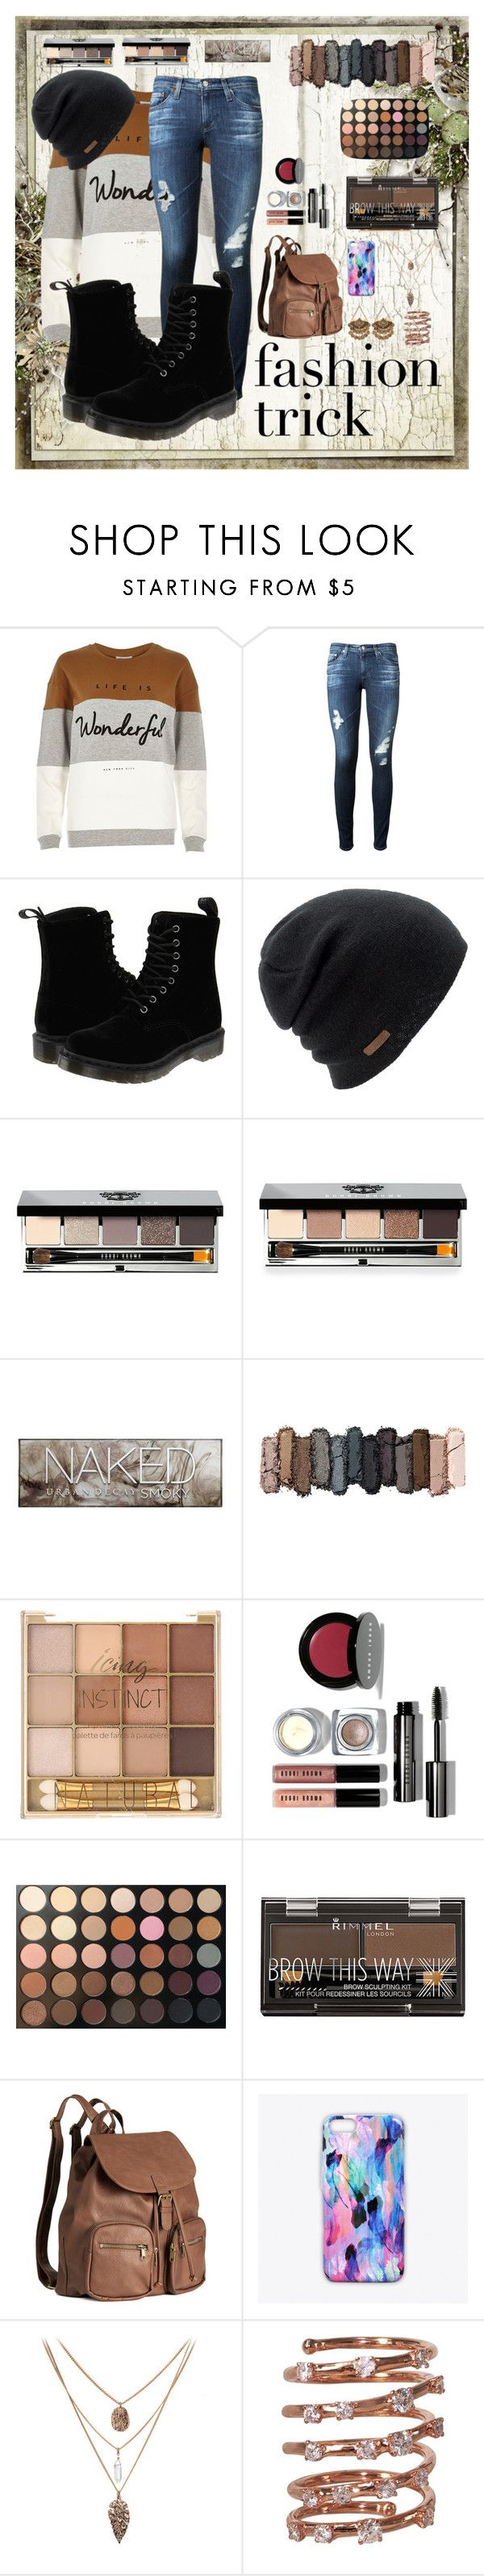 """""""Thanksgiving Fashion"""" by macyofficial ❤ liked on Polyvore featuring River Island, AG Adriano Goldschmied, Dr. Martens, Coal, Bobbi Brown Cosmetics, Urban Decay, Morphe, Rimmel, H&M and Nikki Strange"""